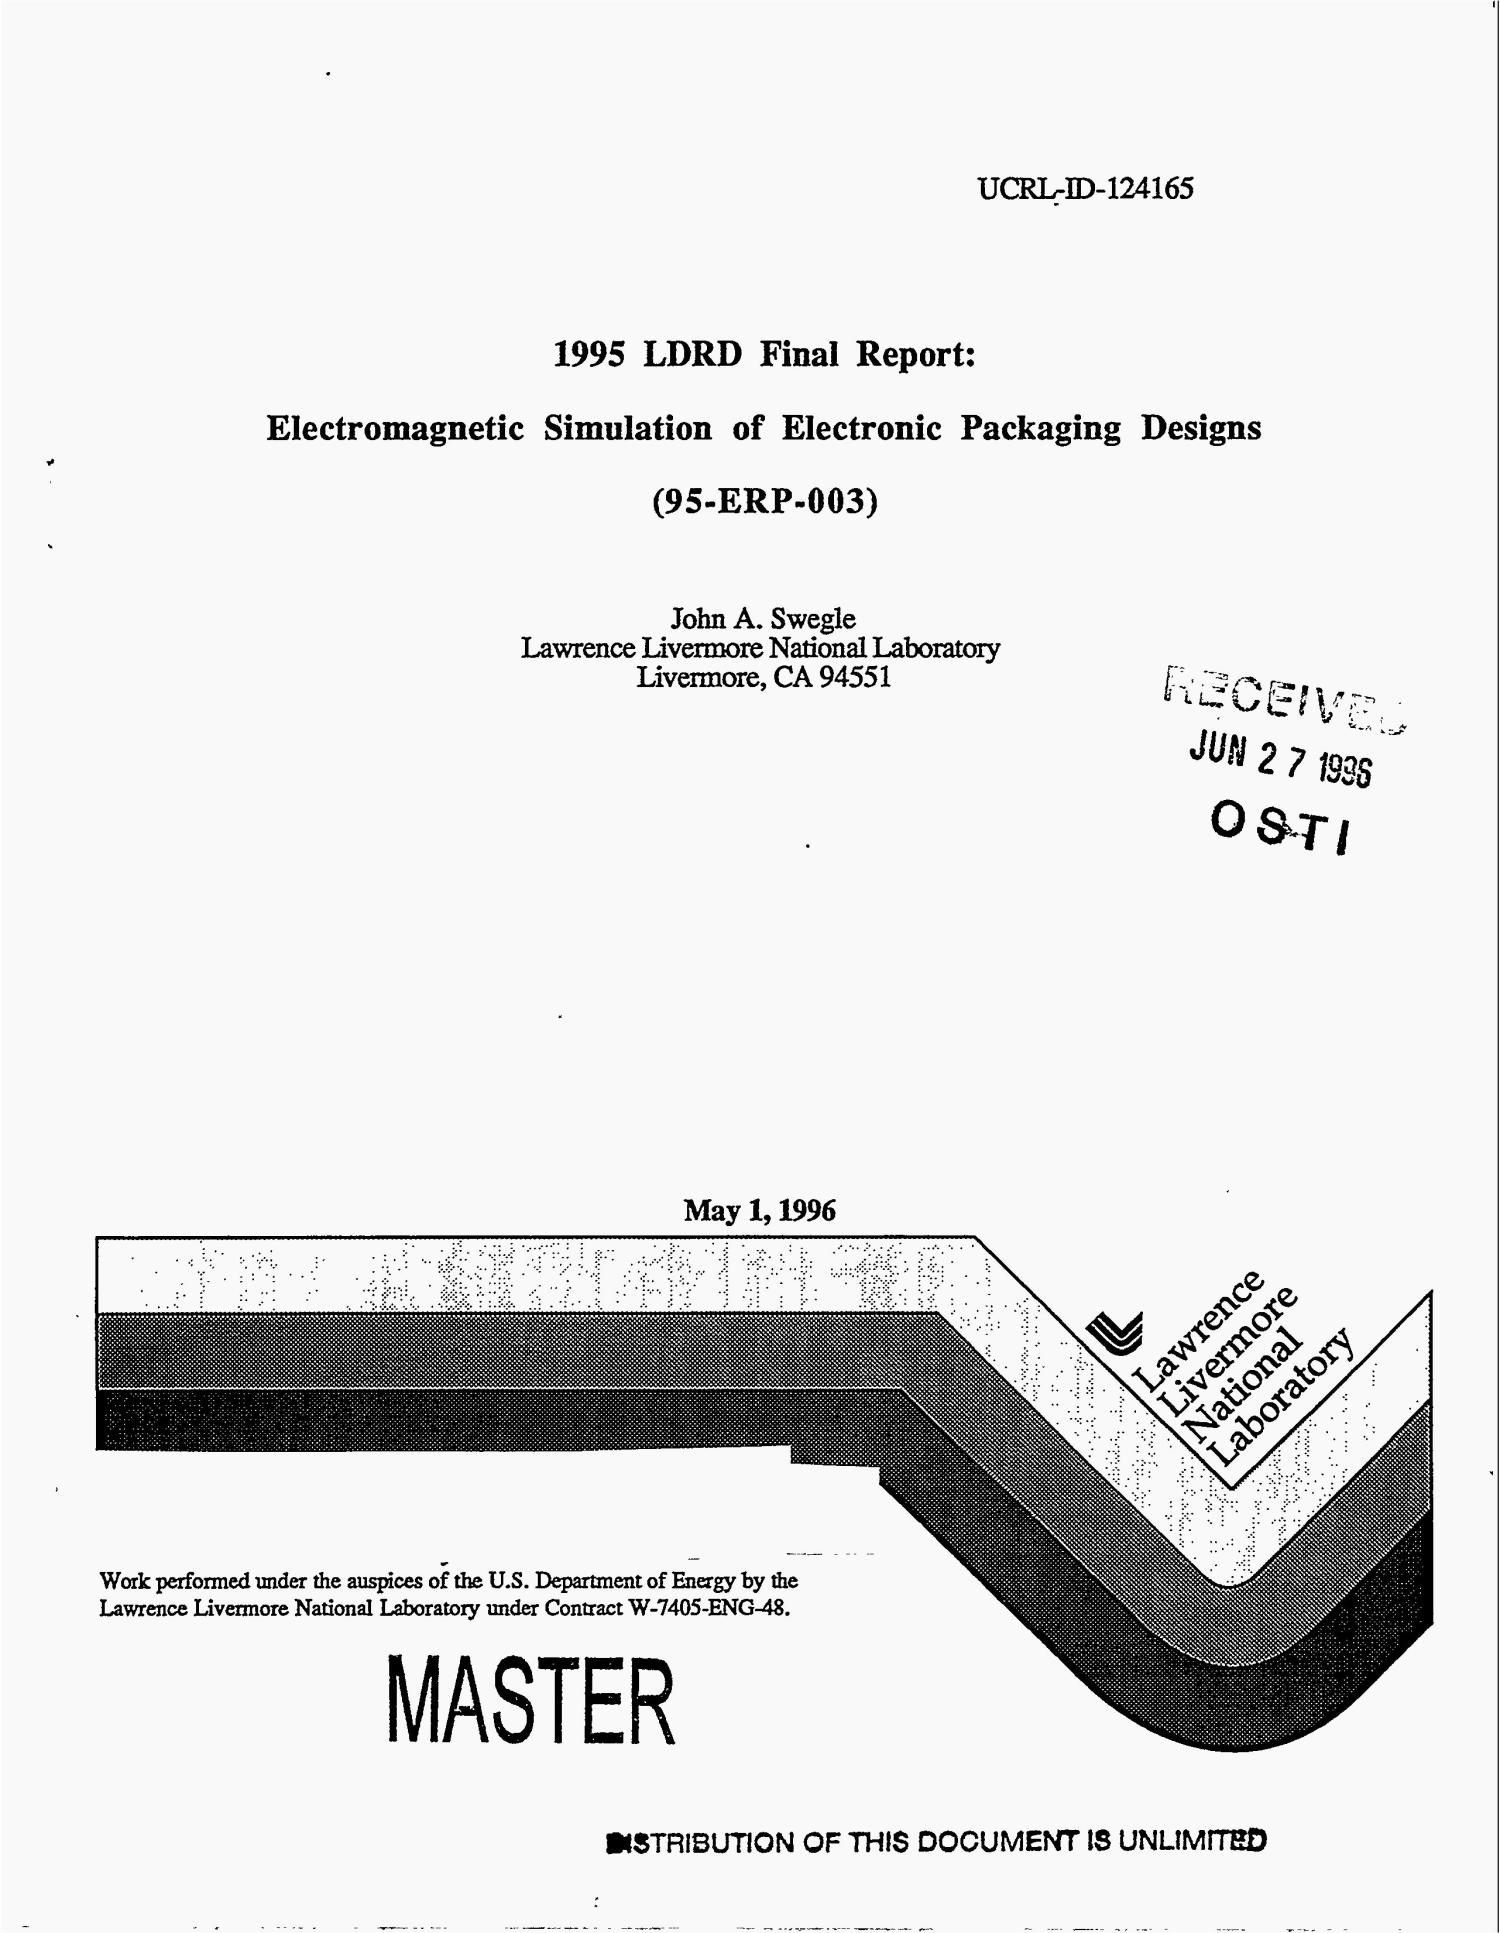 Electromagnetic simulation of electronic packaging designs (95-ERP-003). 1995 LDRD final report                                                                                                      [Sequence #]: 1 of 50